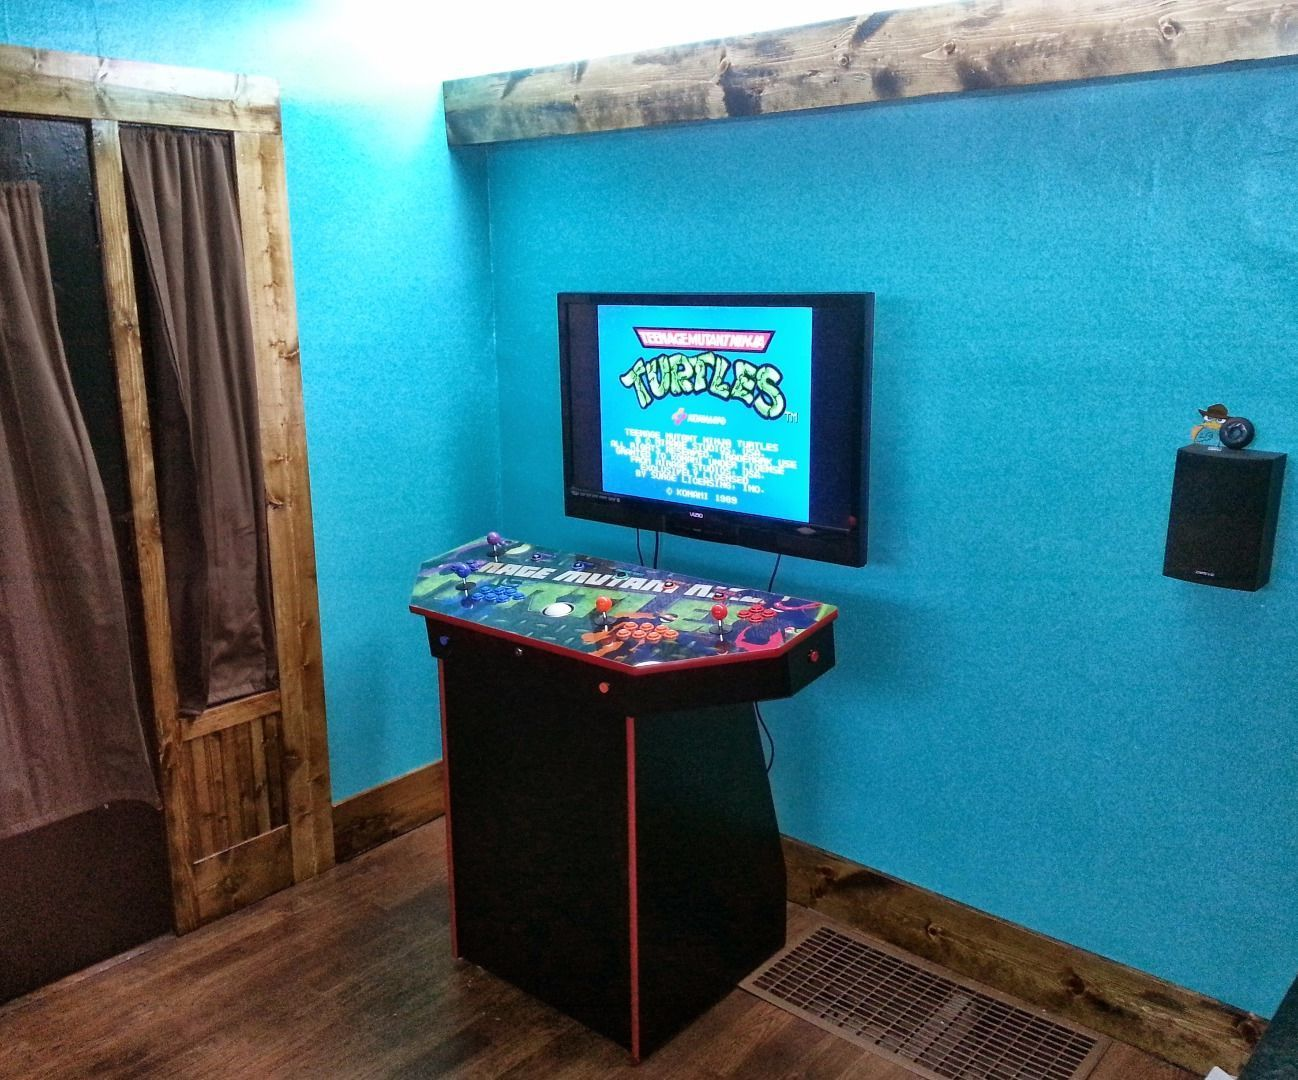 4-Player Pedestal Arcade Cabinet for MAME | Arcade, Video games ...